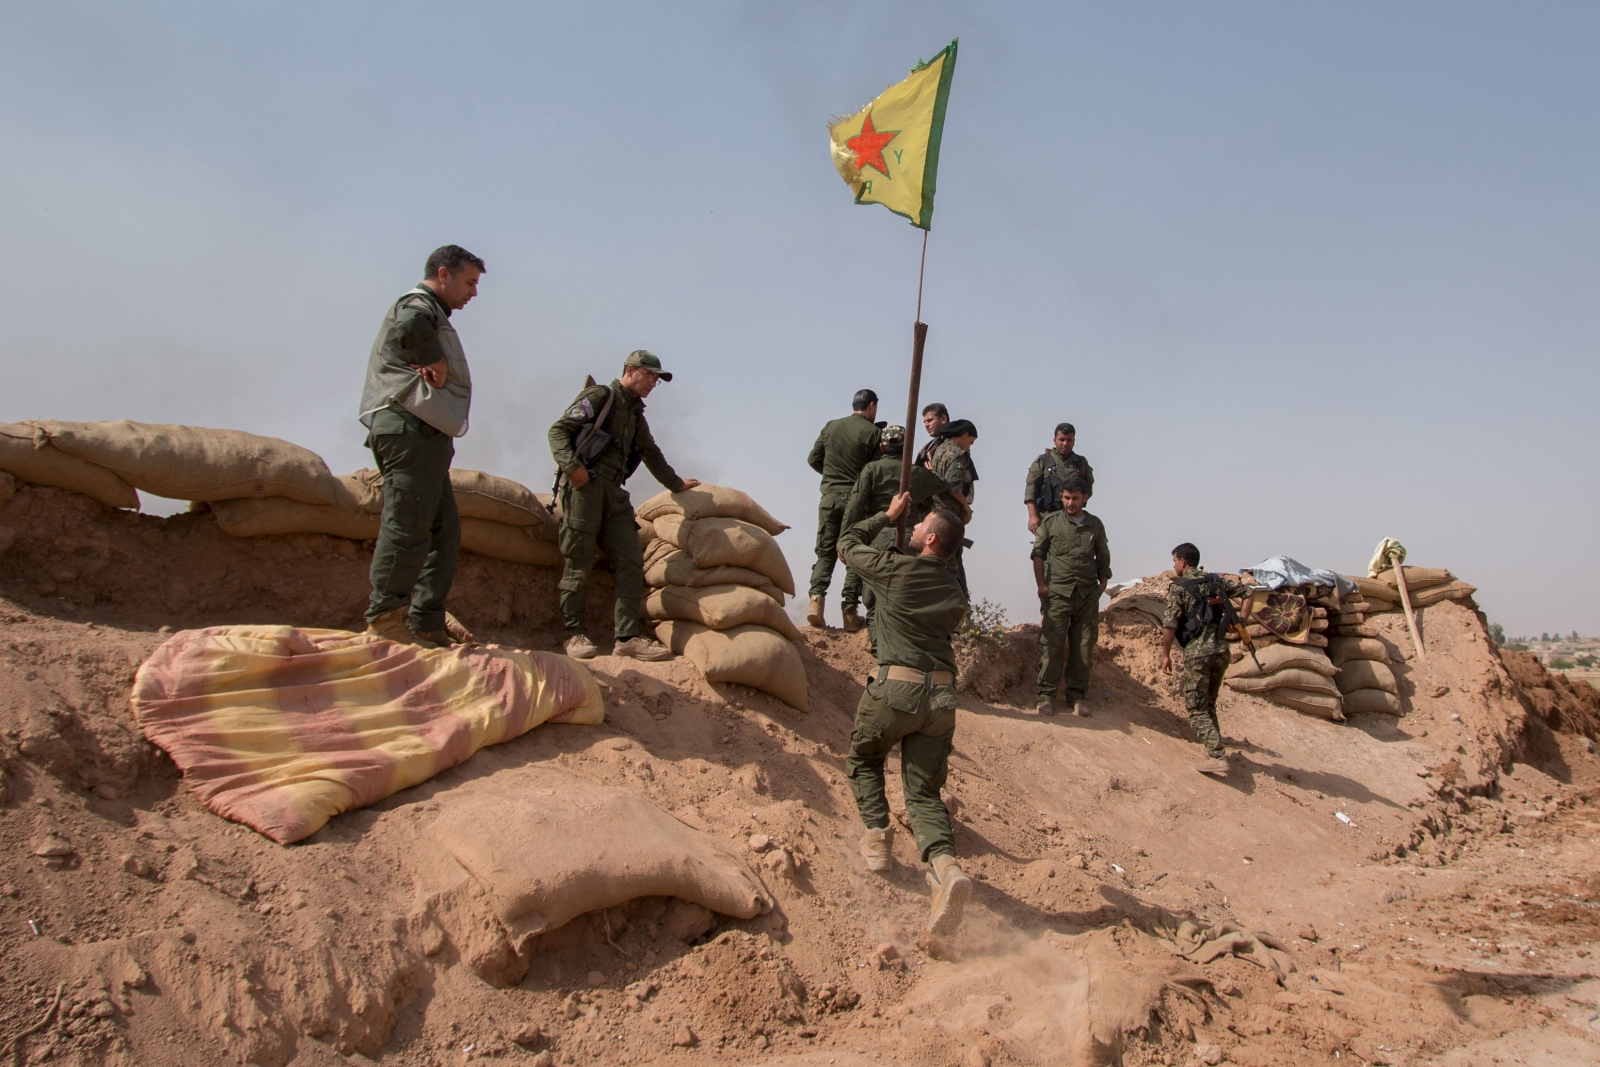 A YPG fighter raises a YPG flag over a barrier in Tel al-Aghbish village, which they retook control of from IS. Source: Reuters